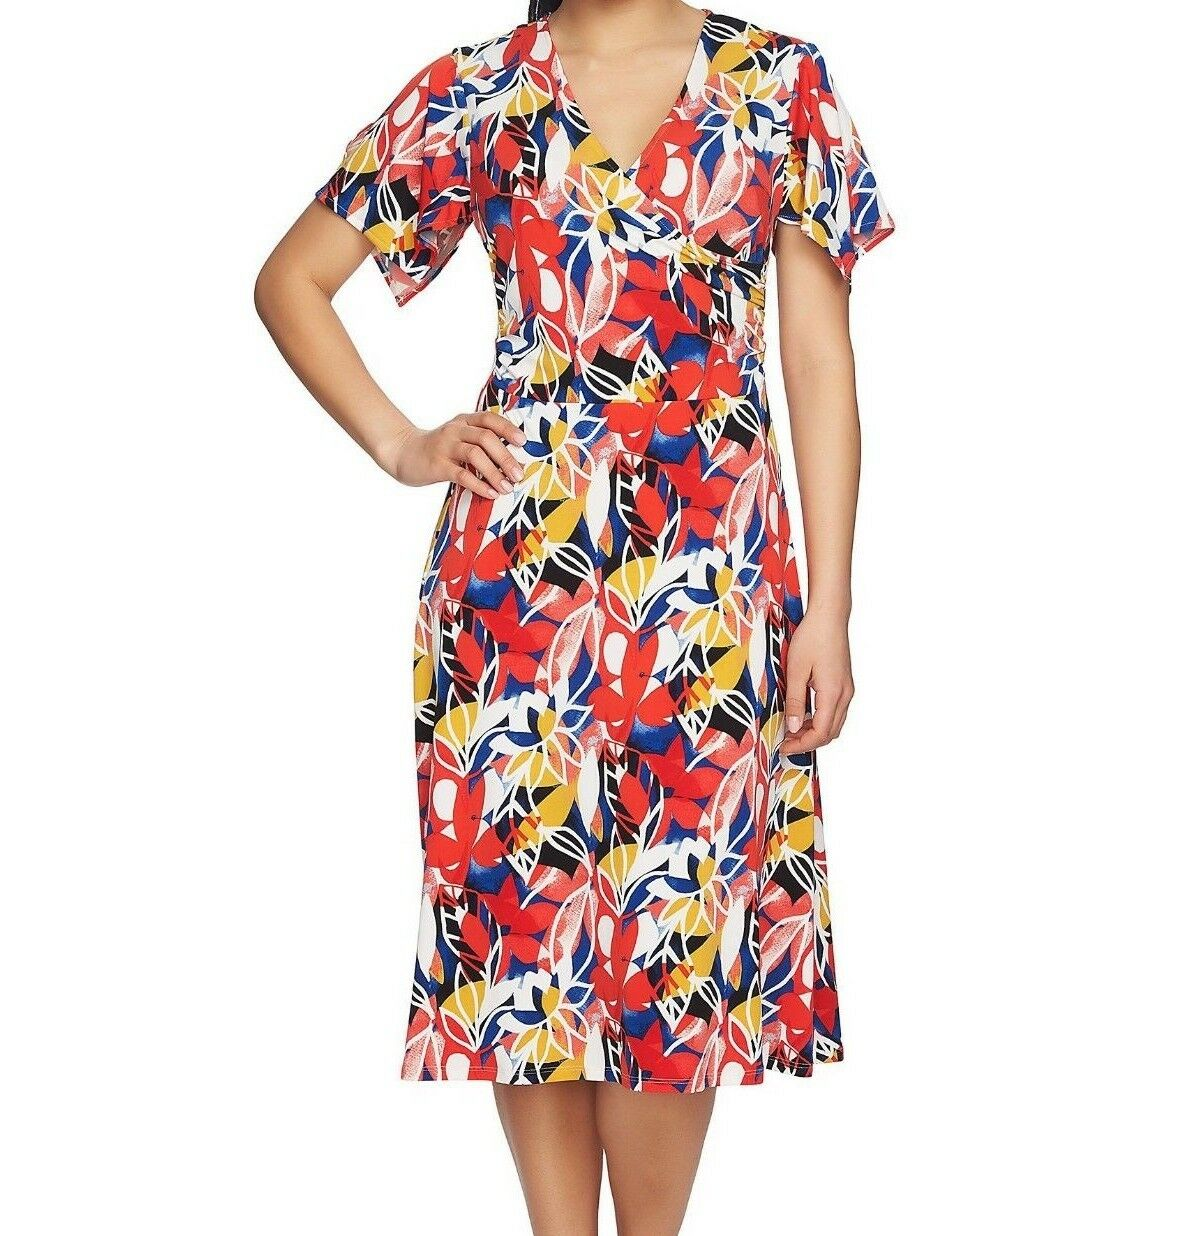 Chaus Chaus Chaus Casual Floral Ruched Wrap Dress with Short Sleeve, size Large, Red Multi b1949c